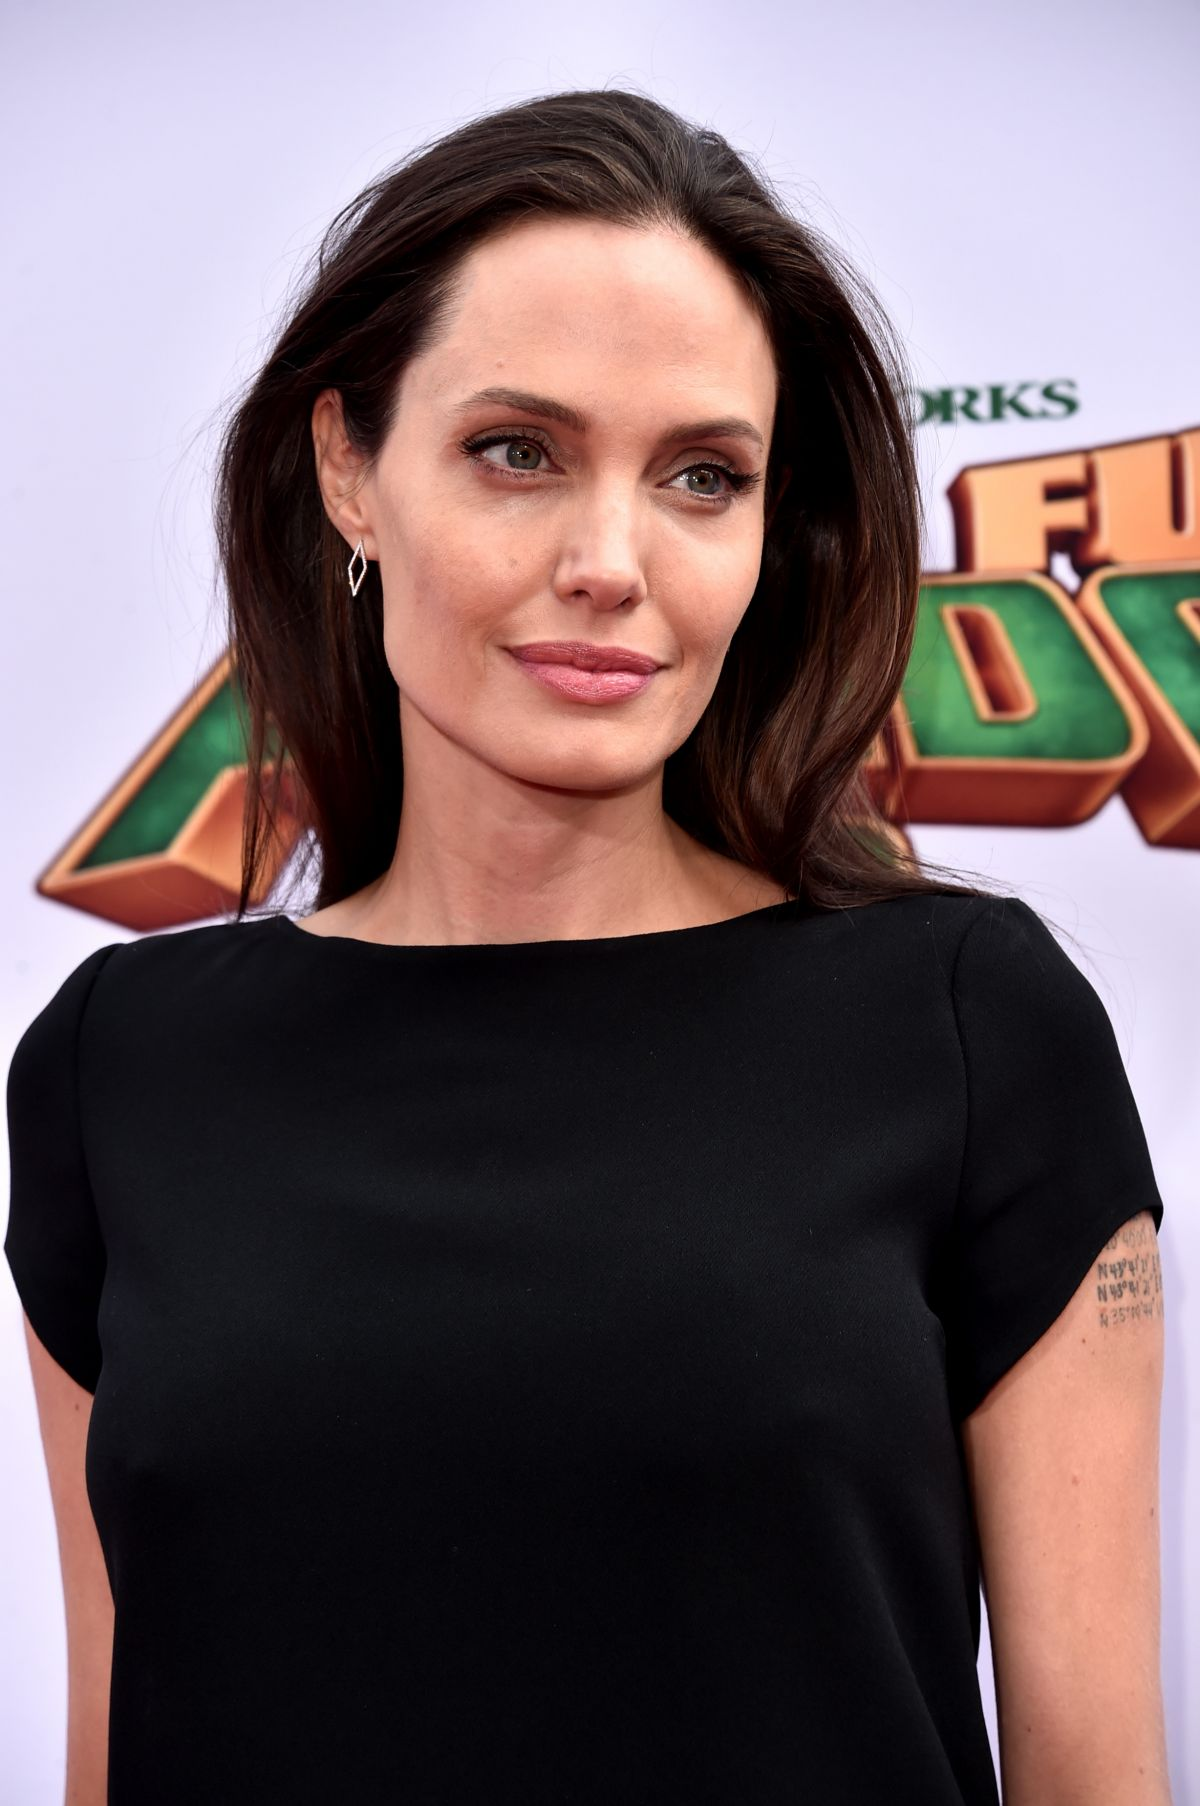 ANGELINA JOLIE at Kung Fu Panda 3 Premiere in Hollywood 01/16/2016 ...